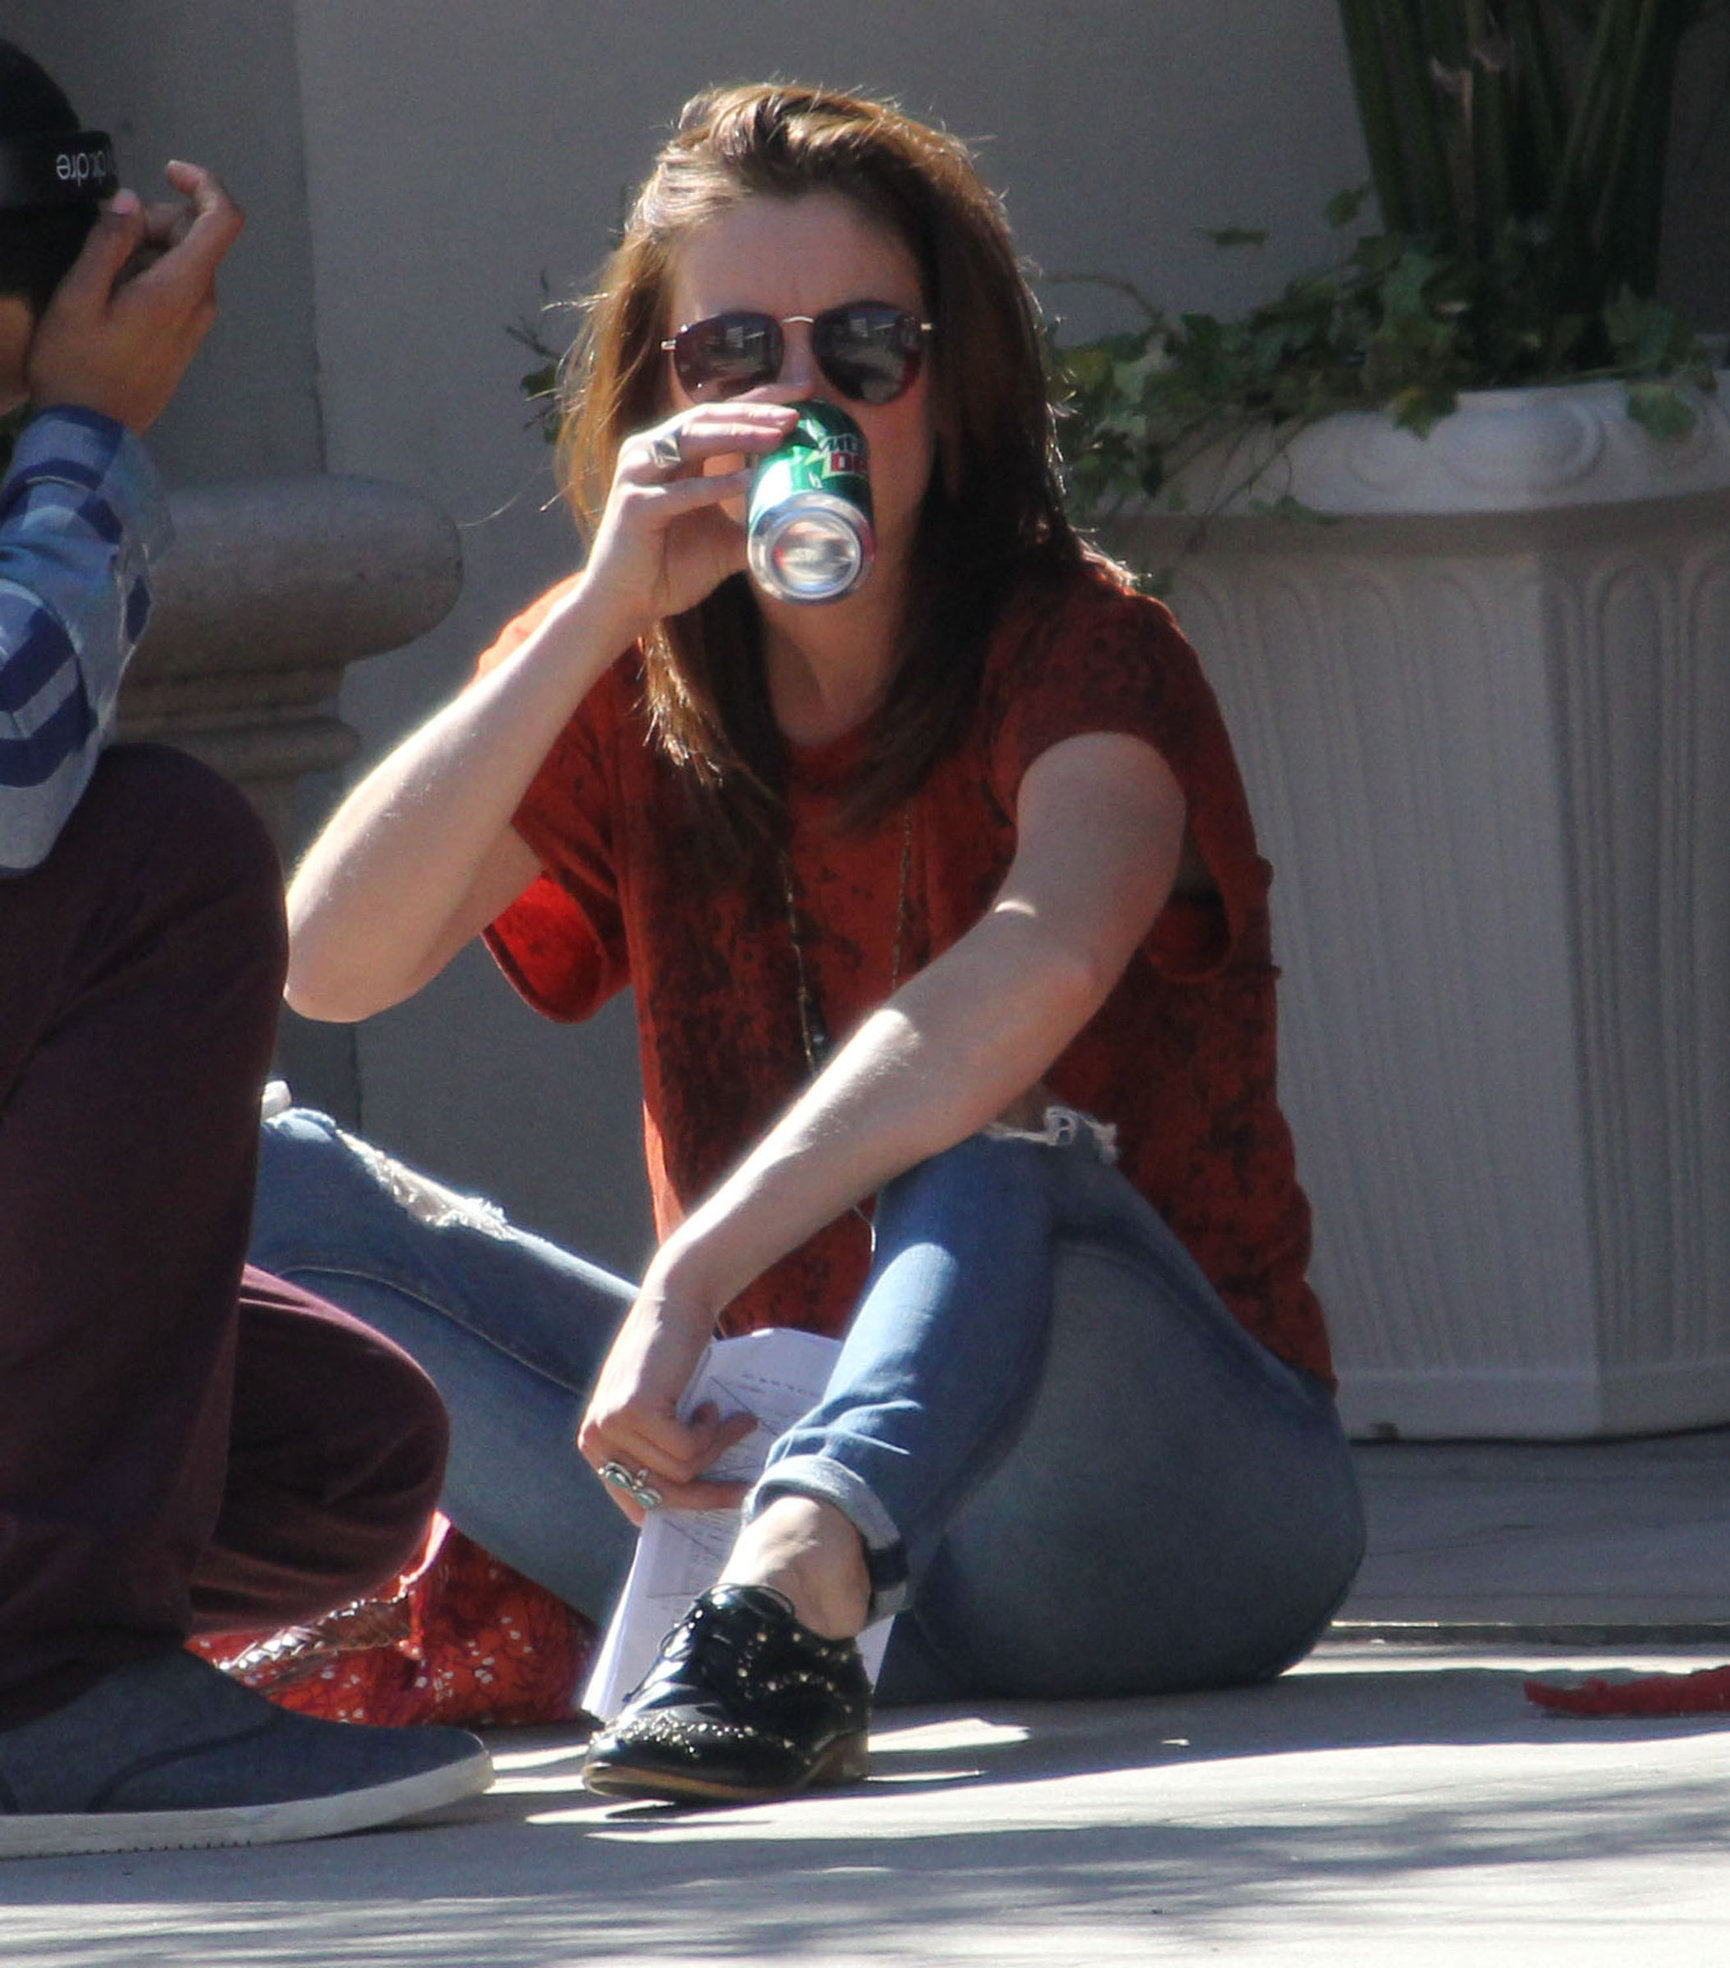 Jessica Stroup takes a break on the set of 90210 in Los Angeles on February 26, 2013